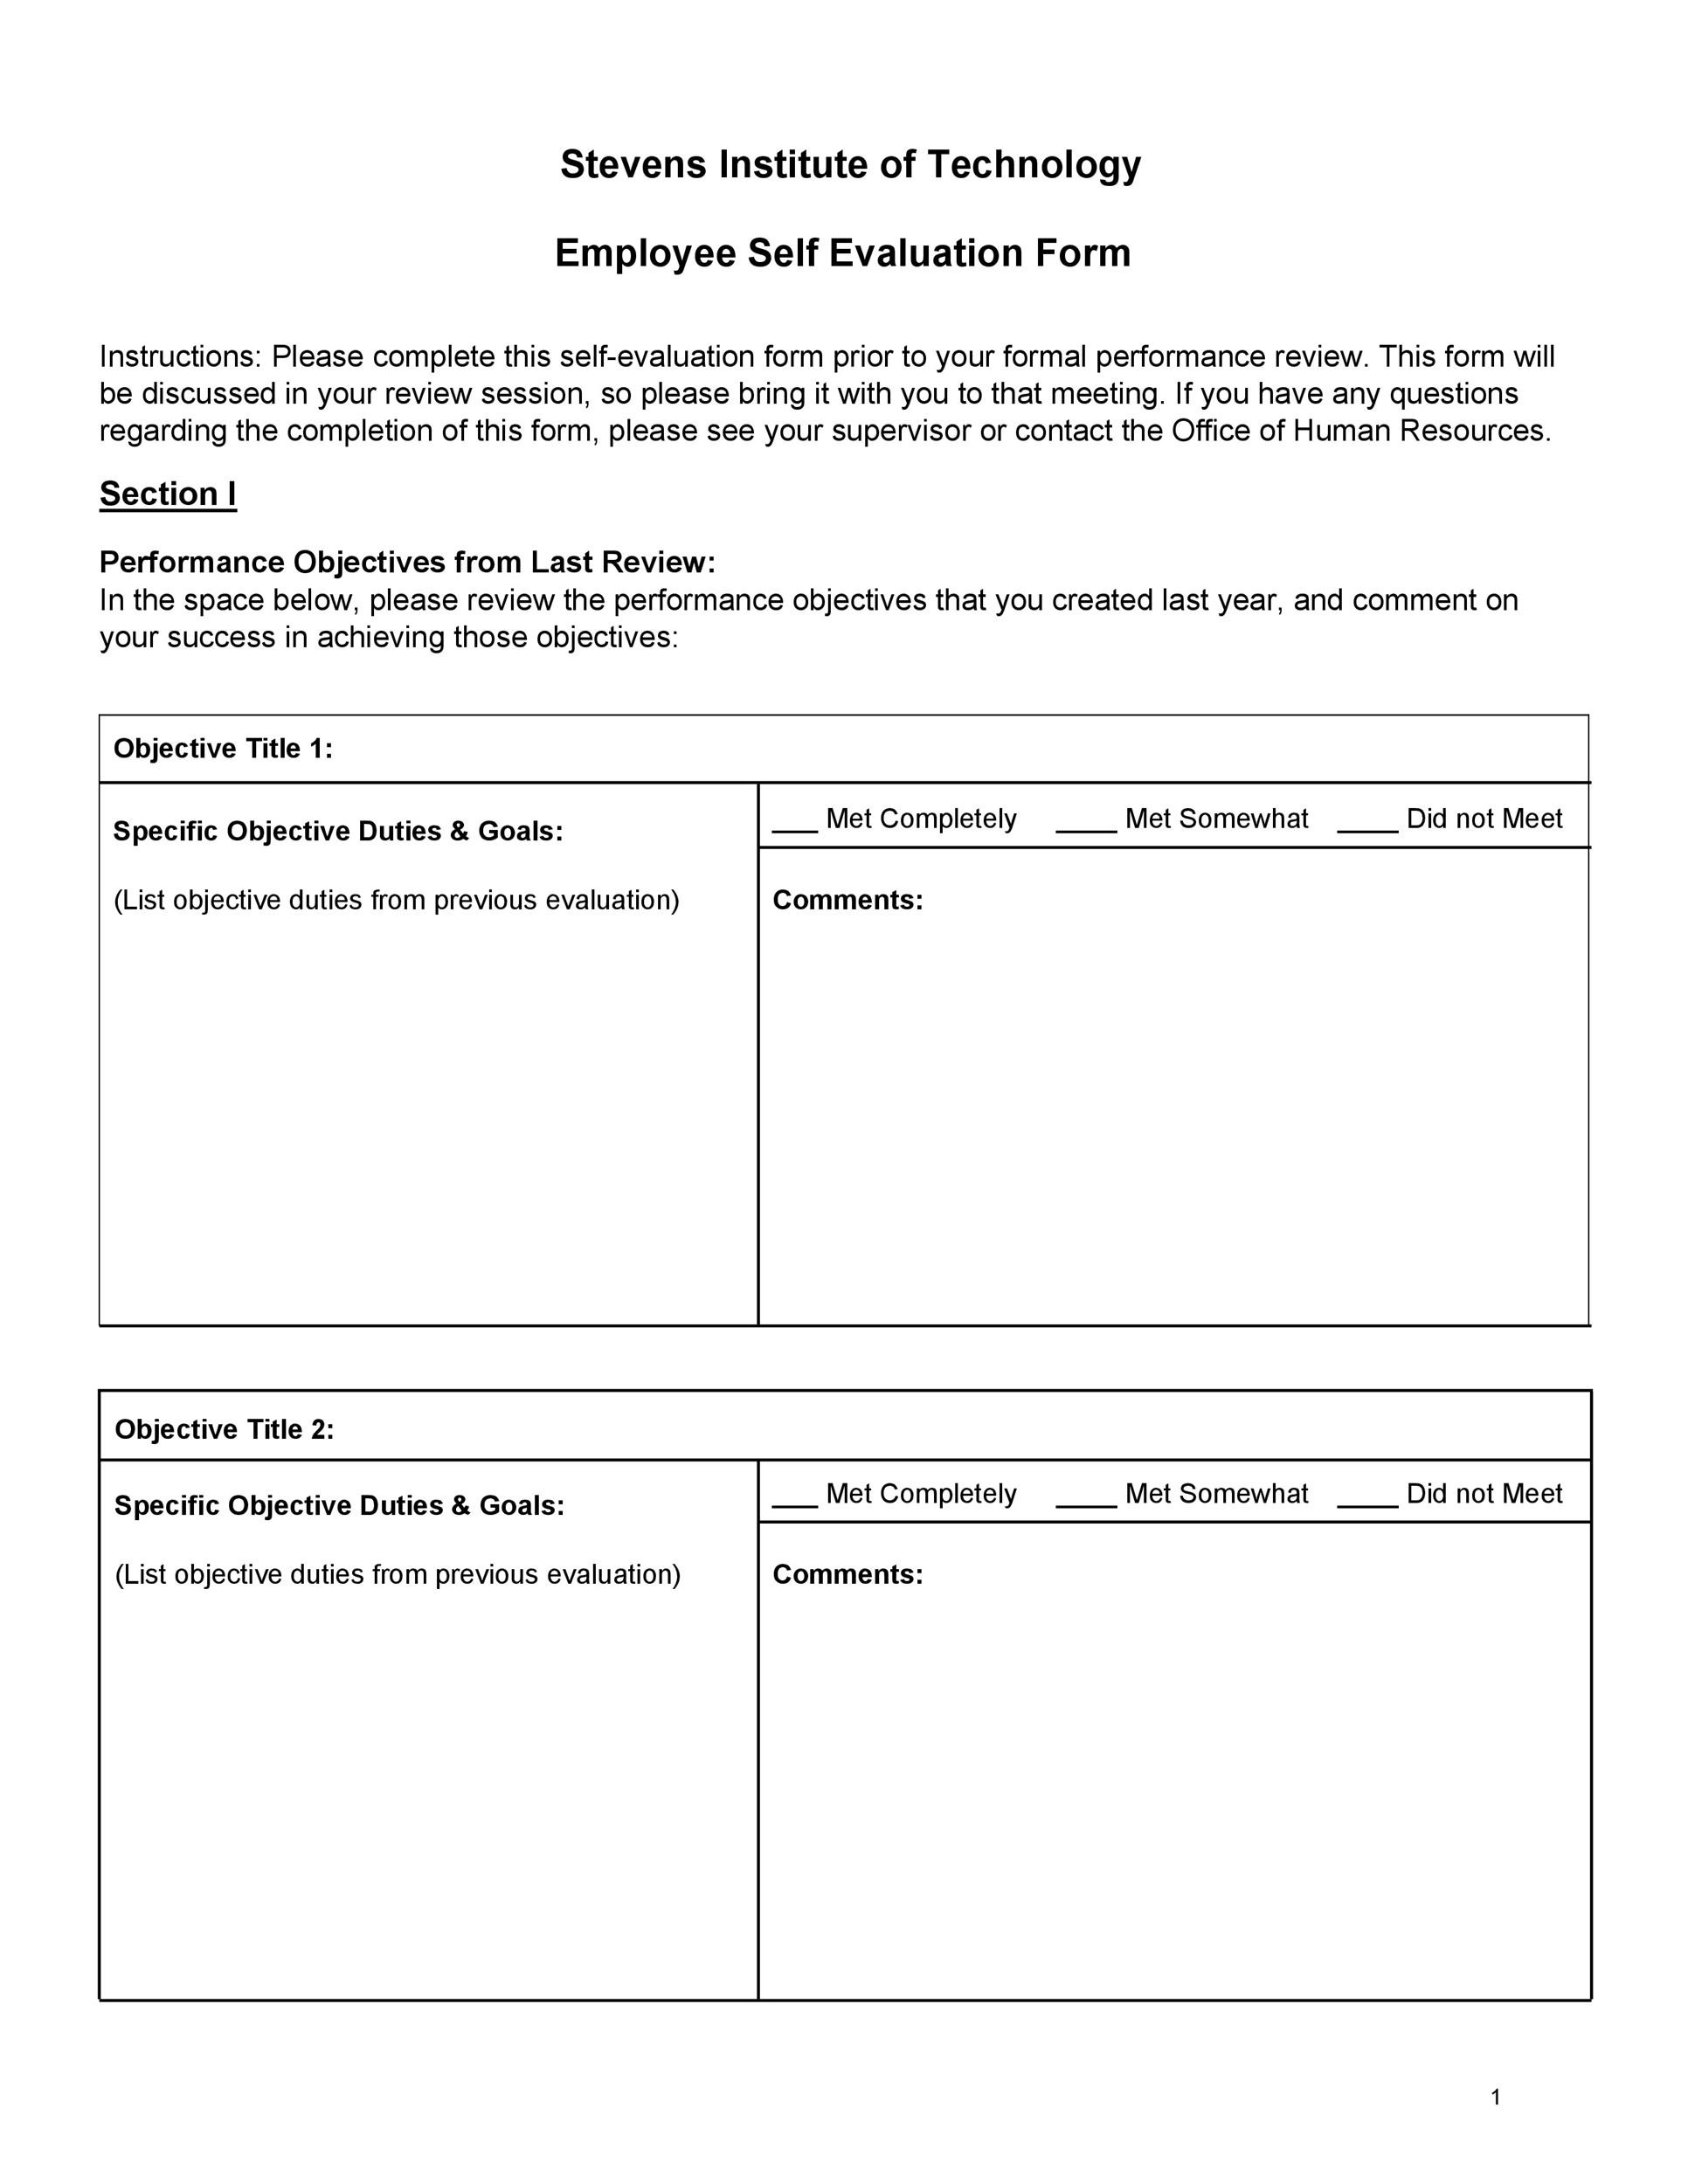 50+ Self Evaluation Examples, Forms  Questions - Template Lab - Self Evaluation Examples For Performance Review